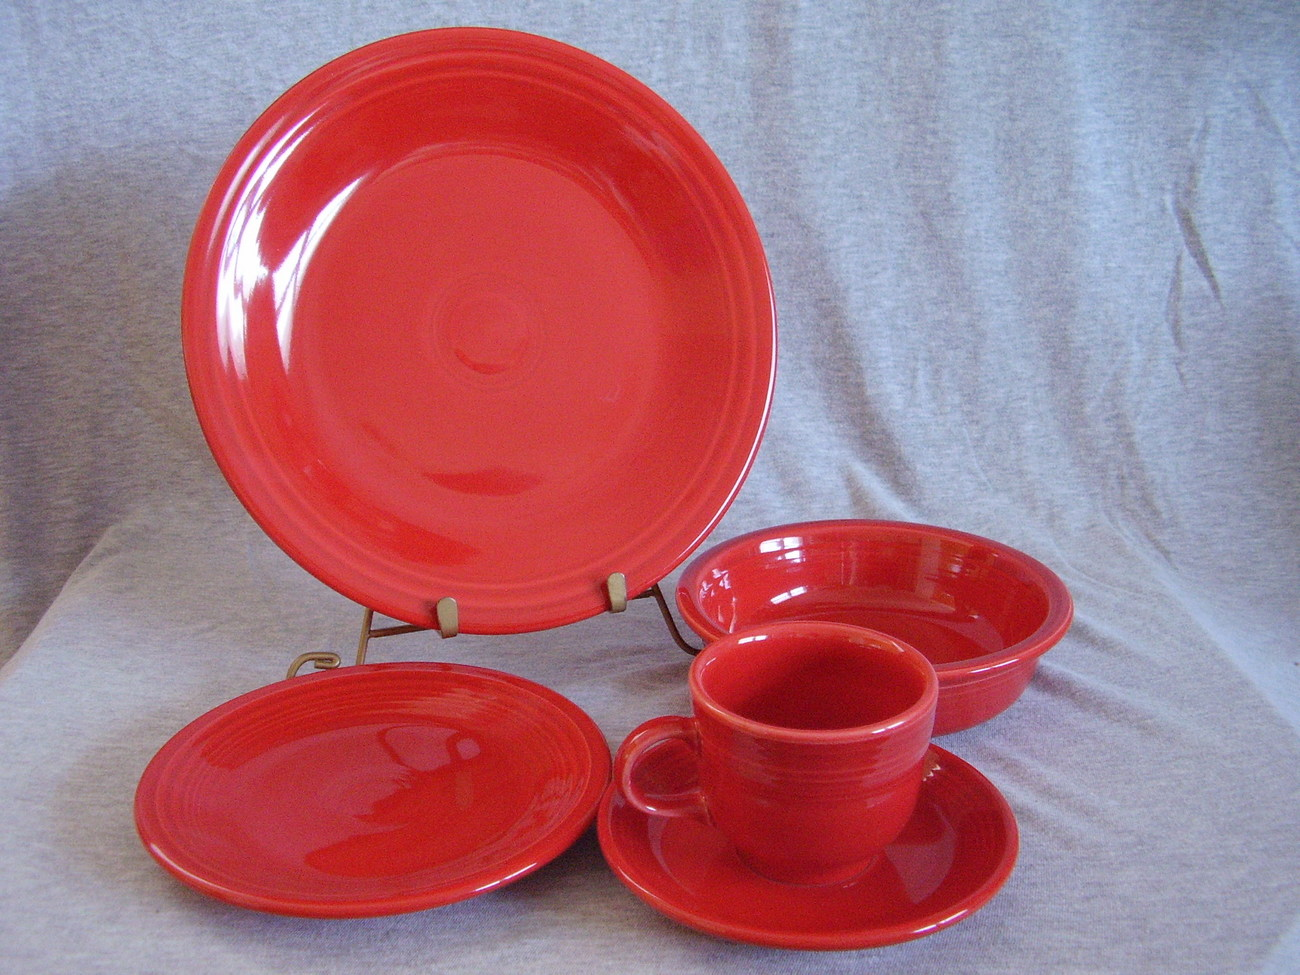 Post 86 Fiestaware Scarlet 5pc Placesetting NIB Fiesta